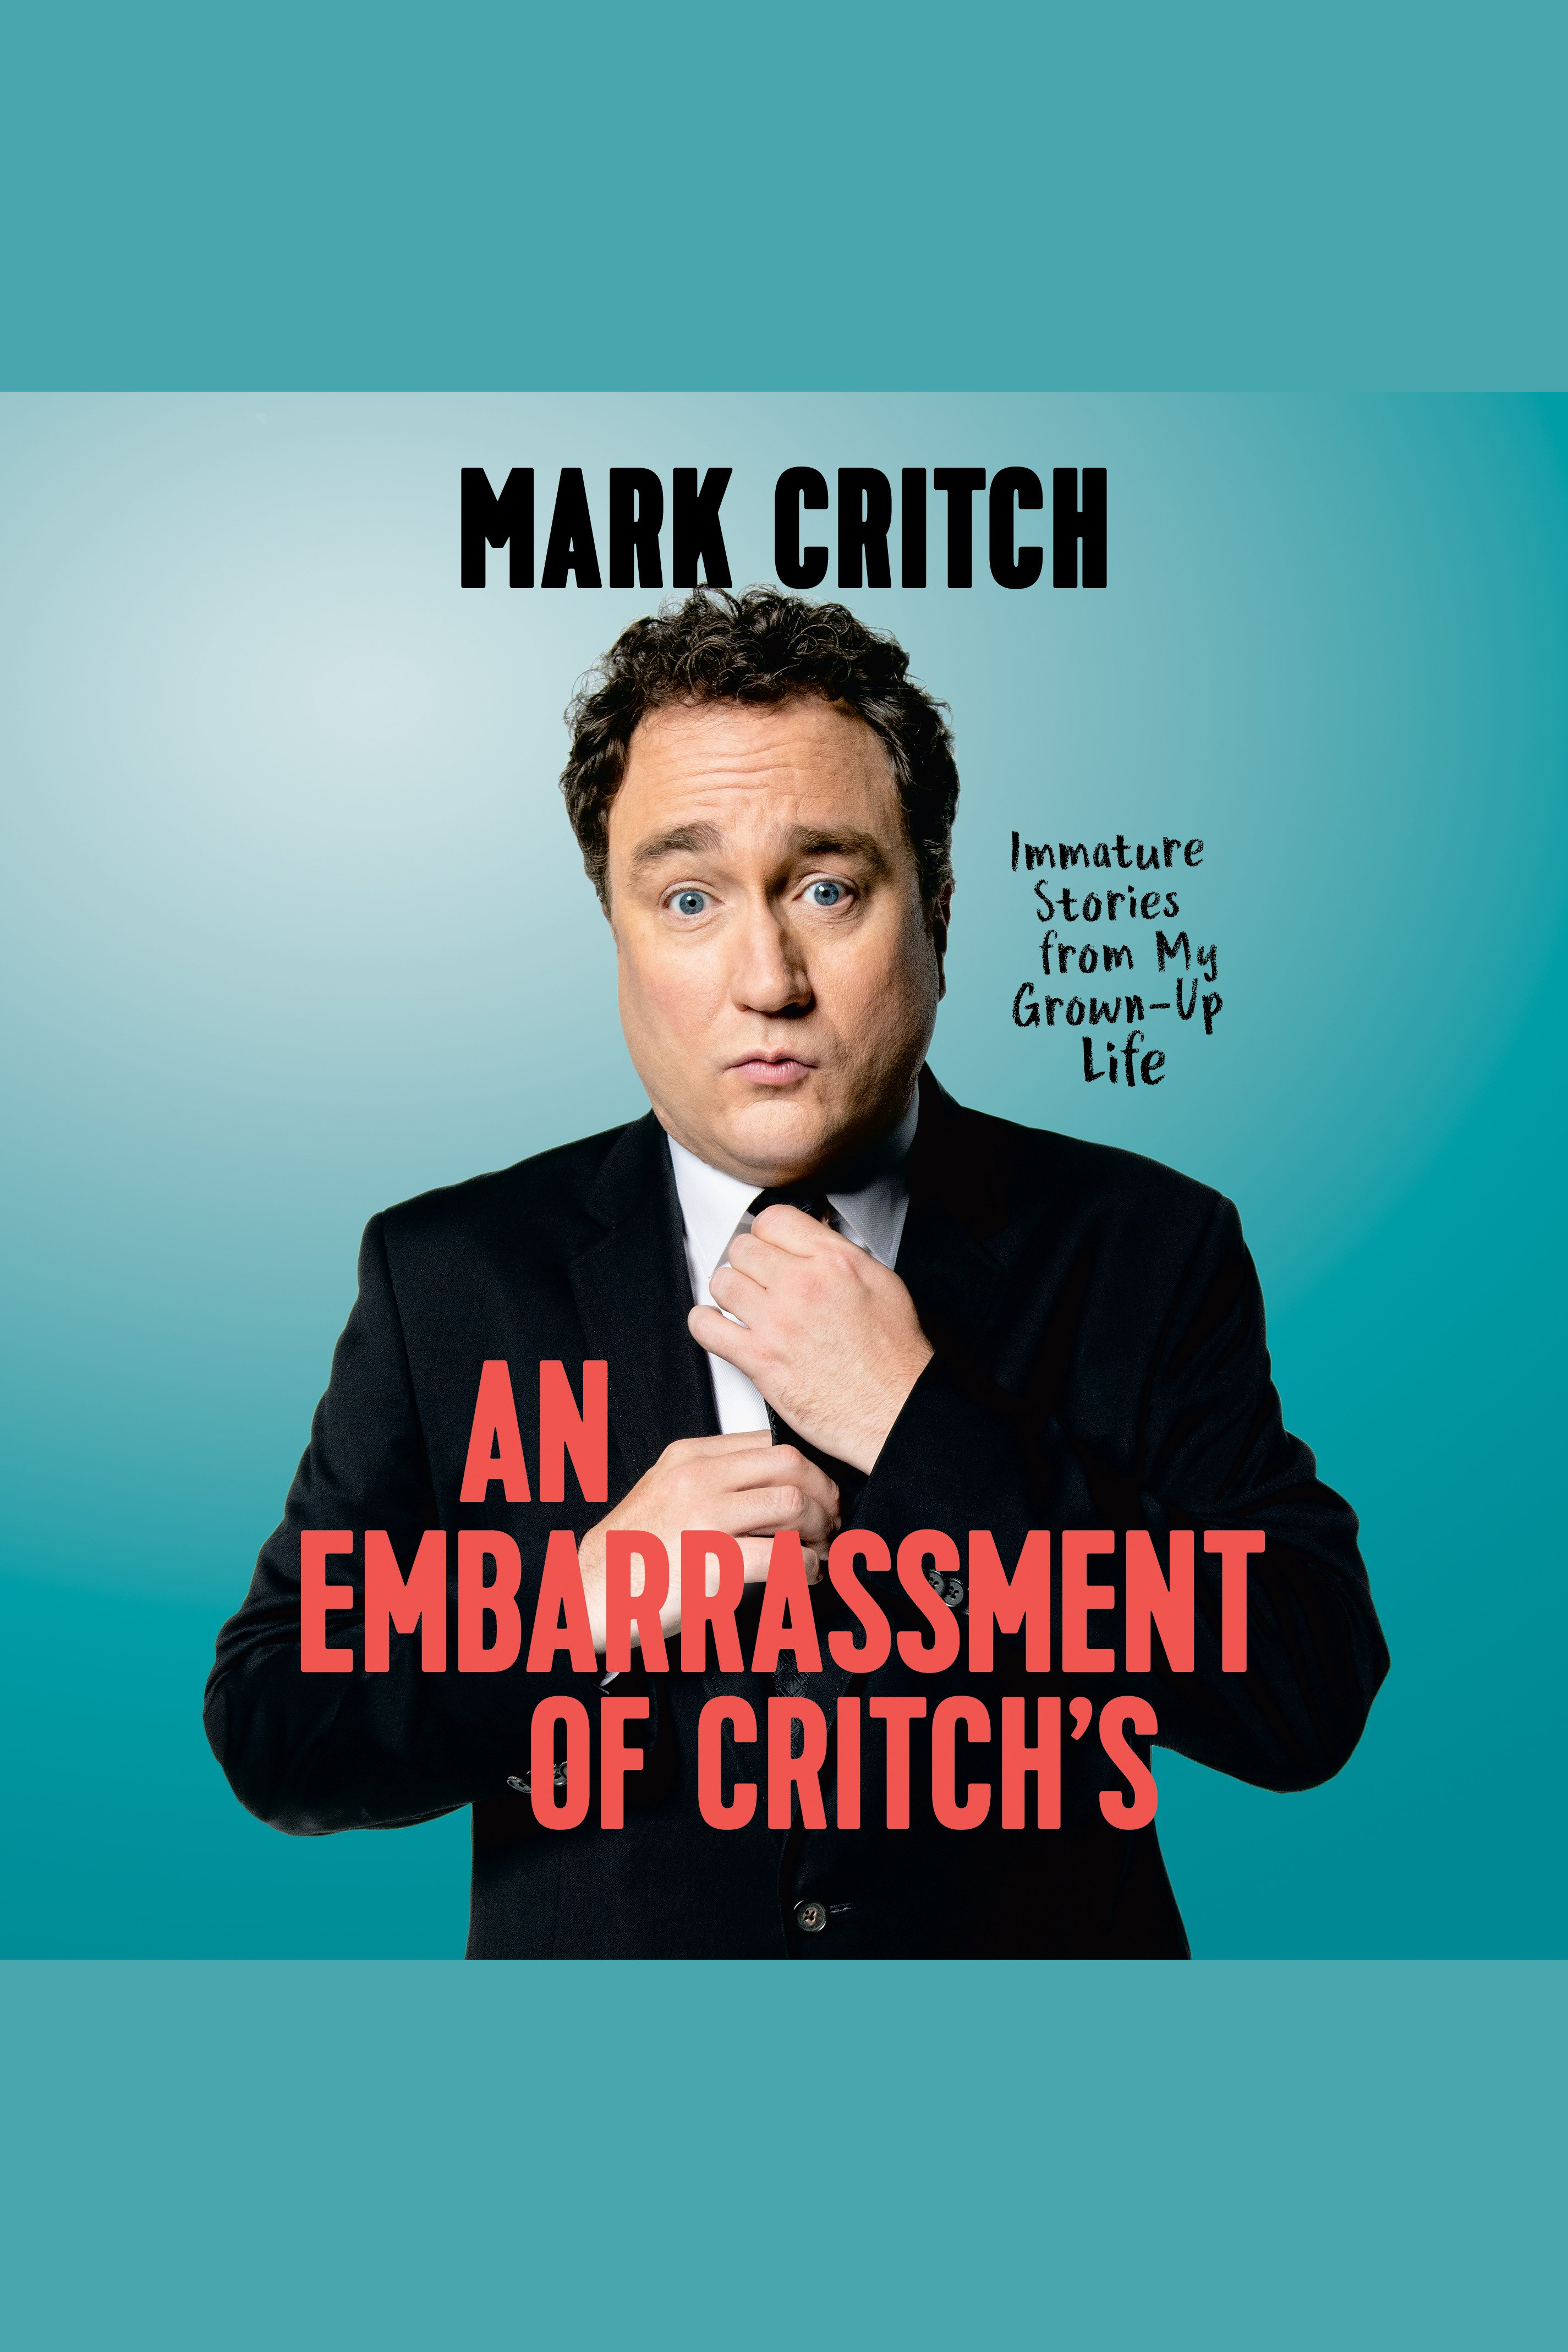 Embarrassment of Critch's, An Immature Stories From My Grown-Up Life